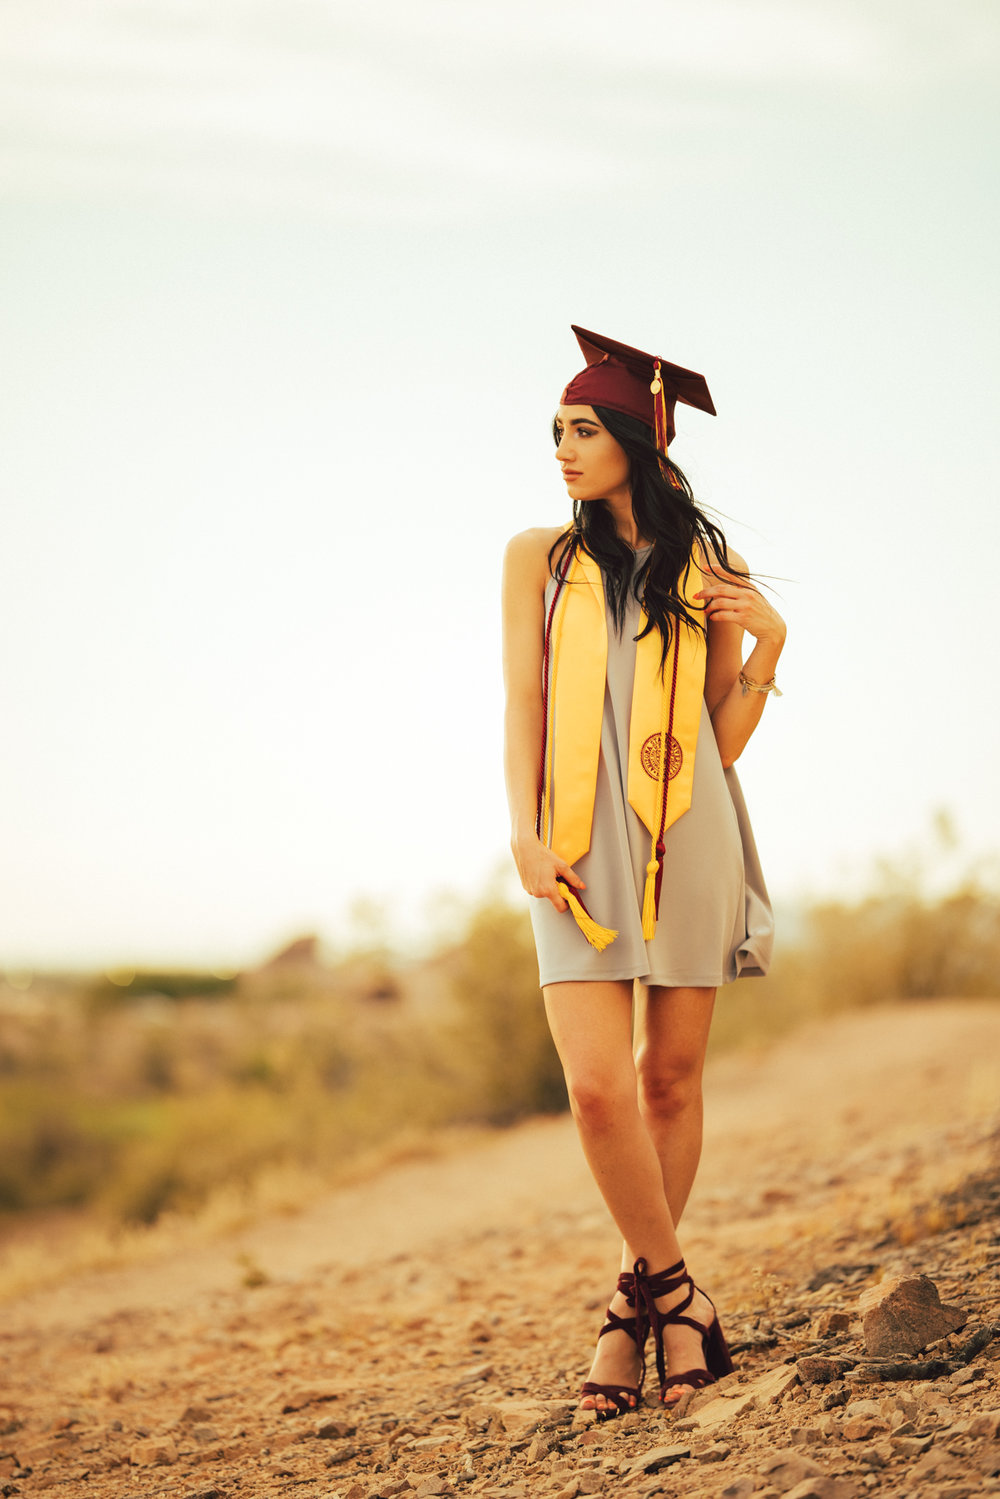 Graduation Shoot - Kirsten - Final.jpg